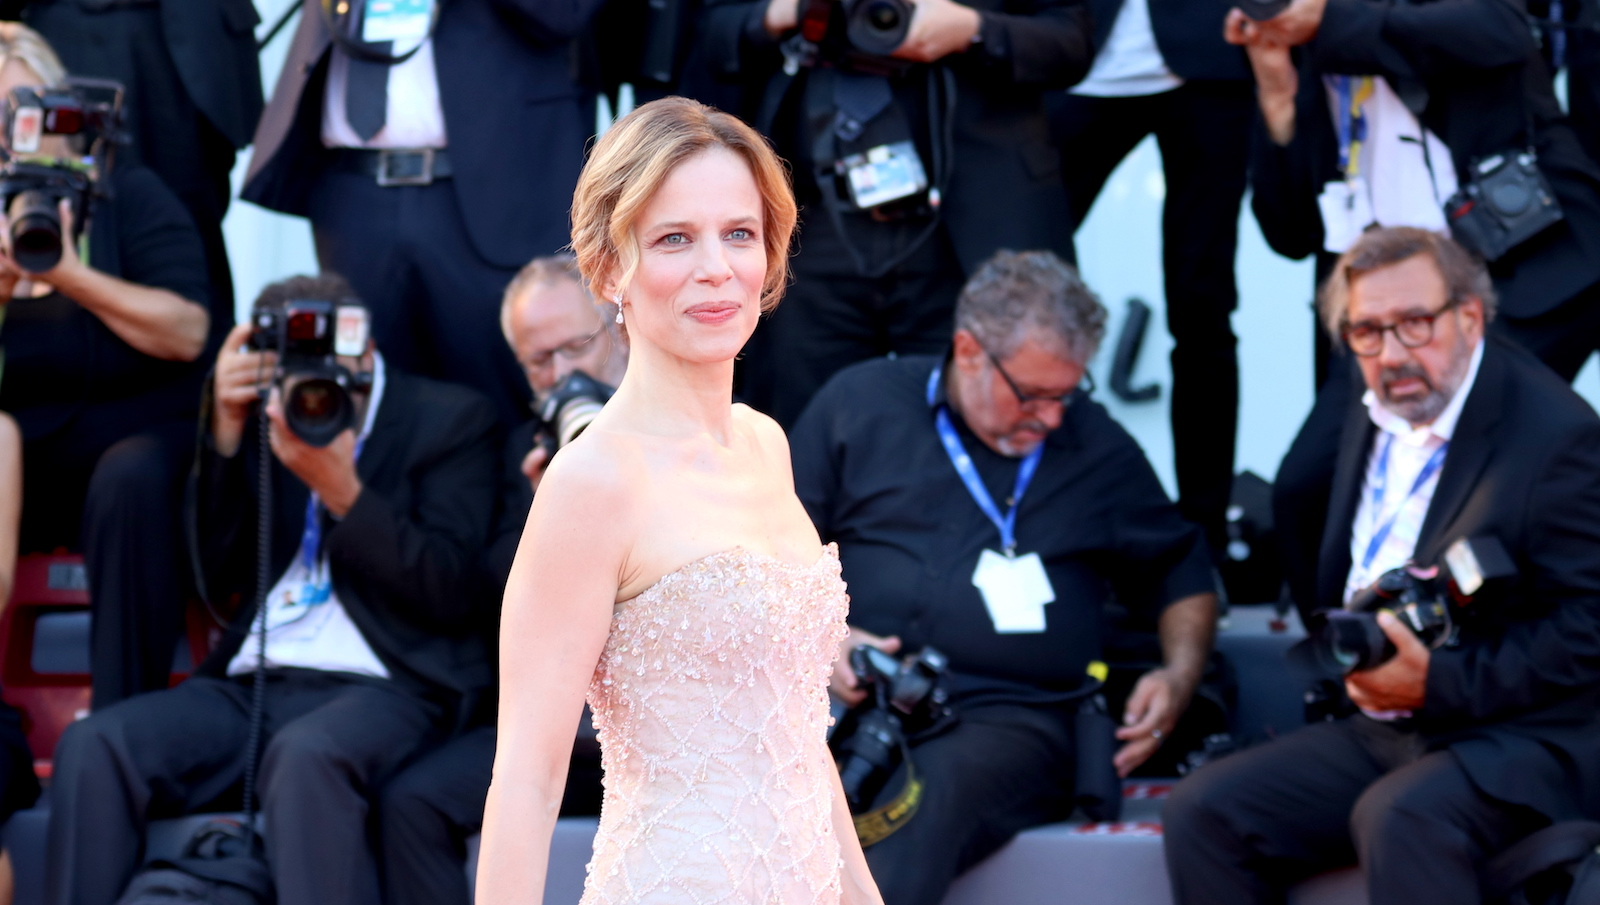 Venezia 2016: uno scatto di sonia bergamasco sul red carpet